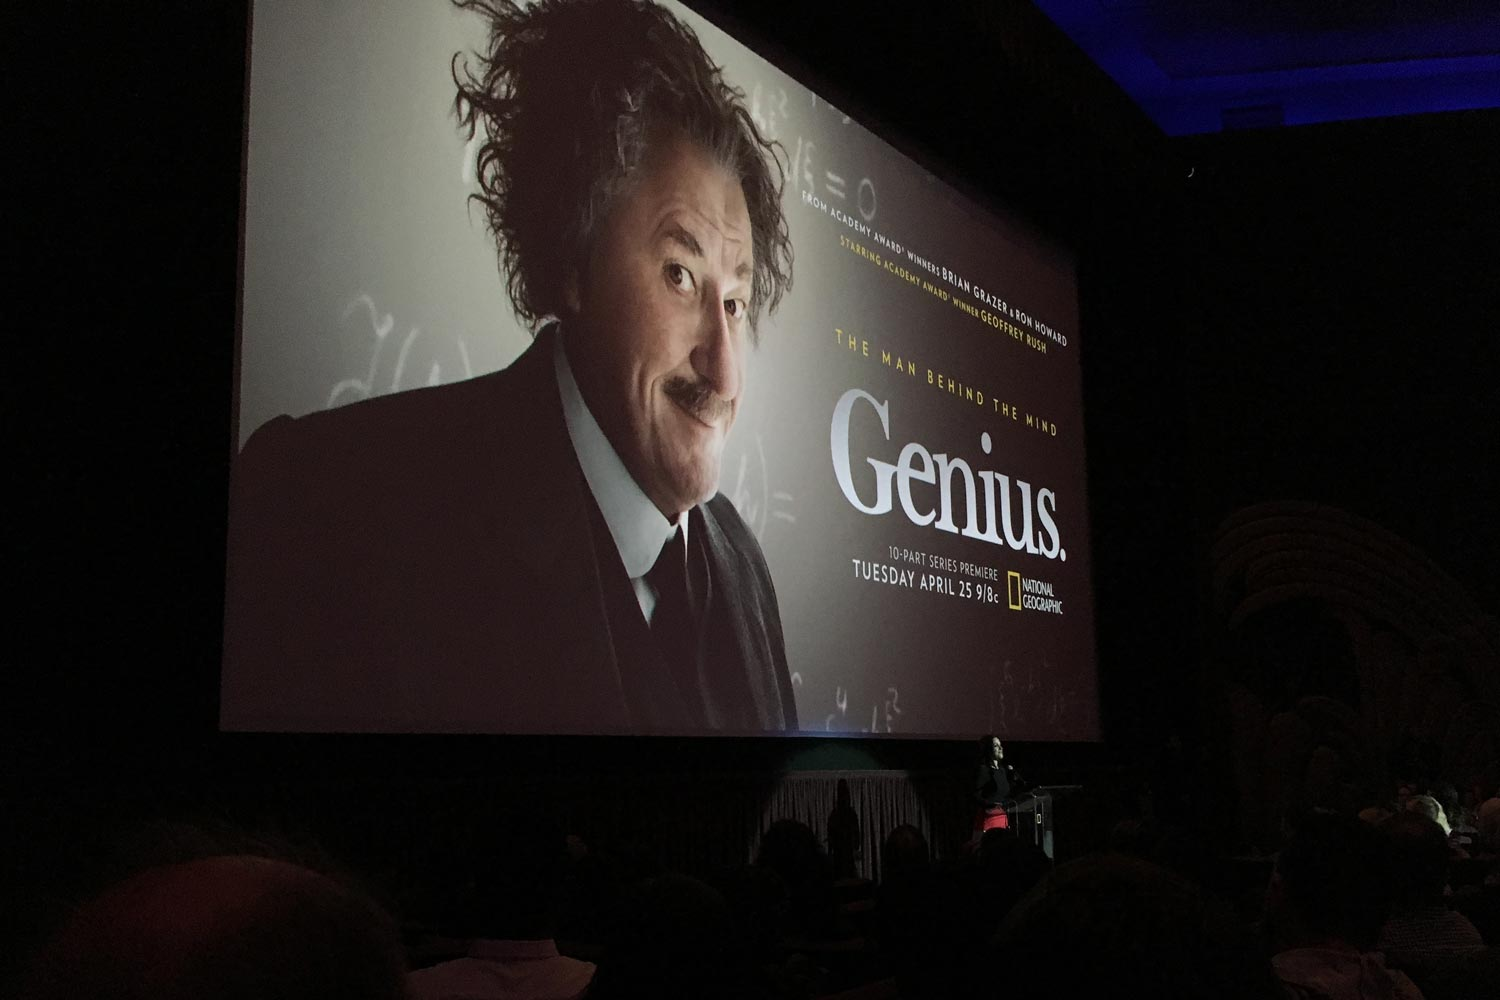 'Genius' title card on movie screen